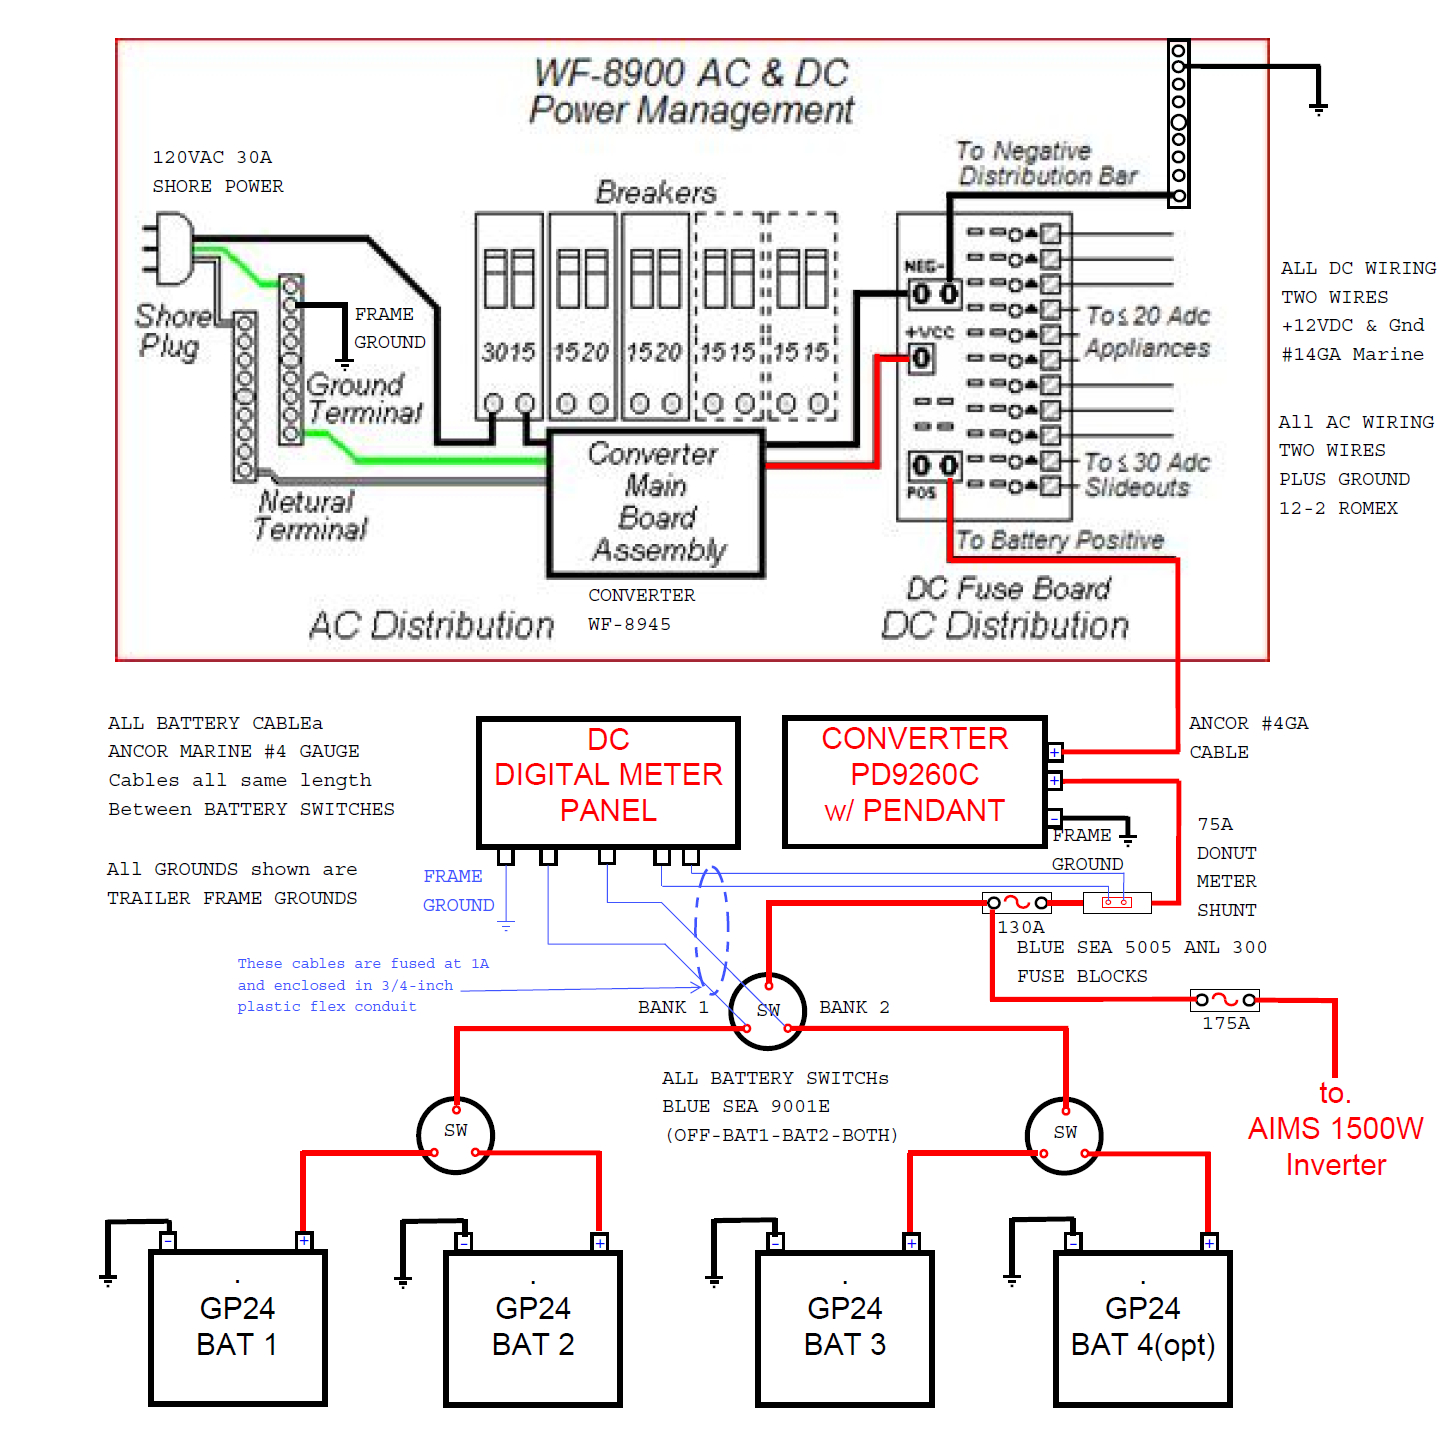 Camper 30 Amp Rv Wiring Diagram | Manual E-Books - 30 Amp Rv Wiring Diagram